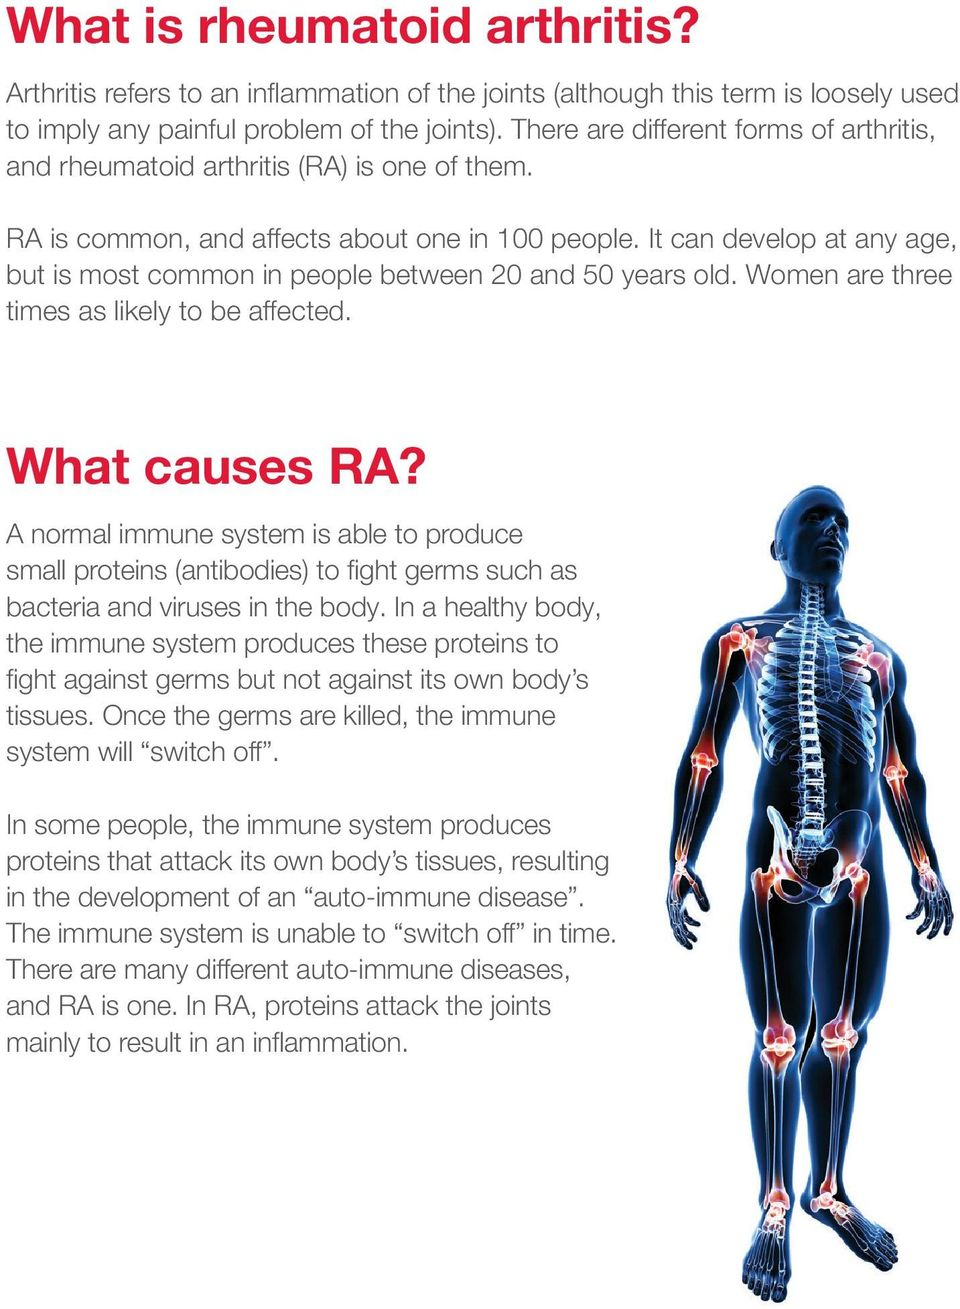 It can develop at any age, but is most common in people between 20 and 50 years old. Women are three times as likely to be affected. What causes RA?